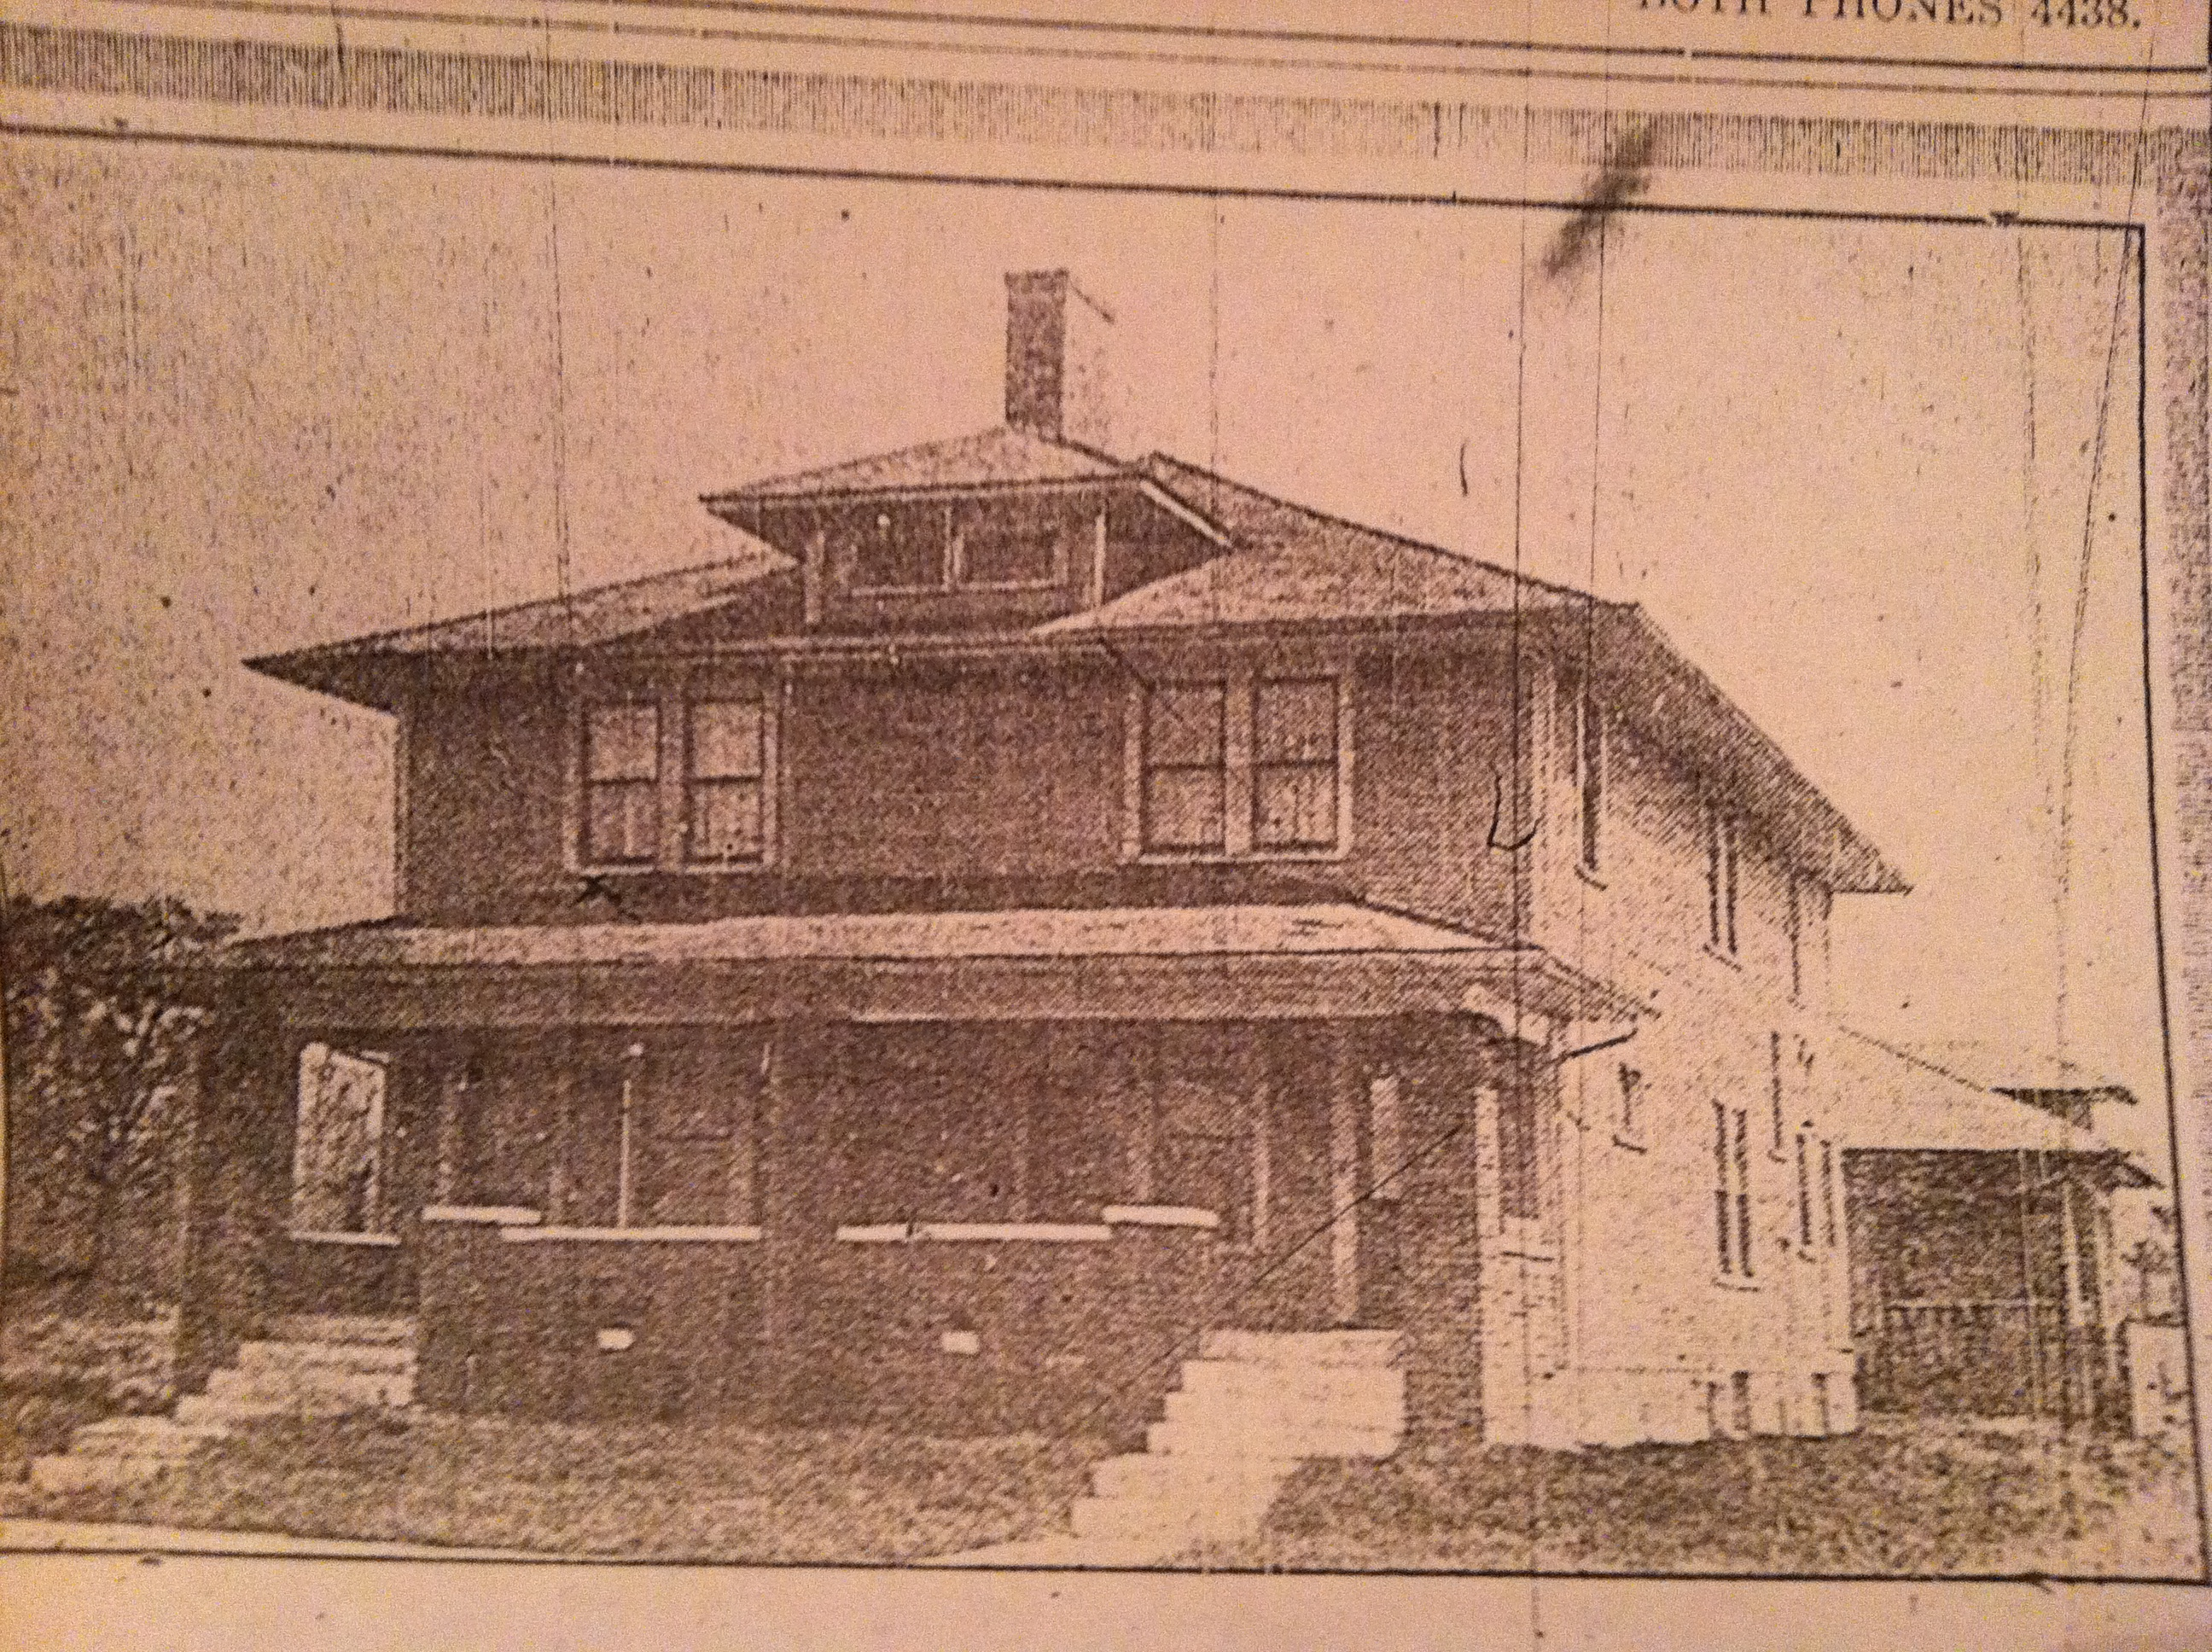 Home at 25th & Highland in 1916